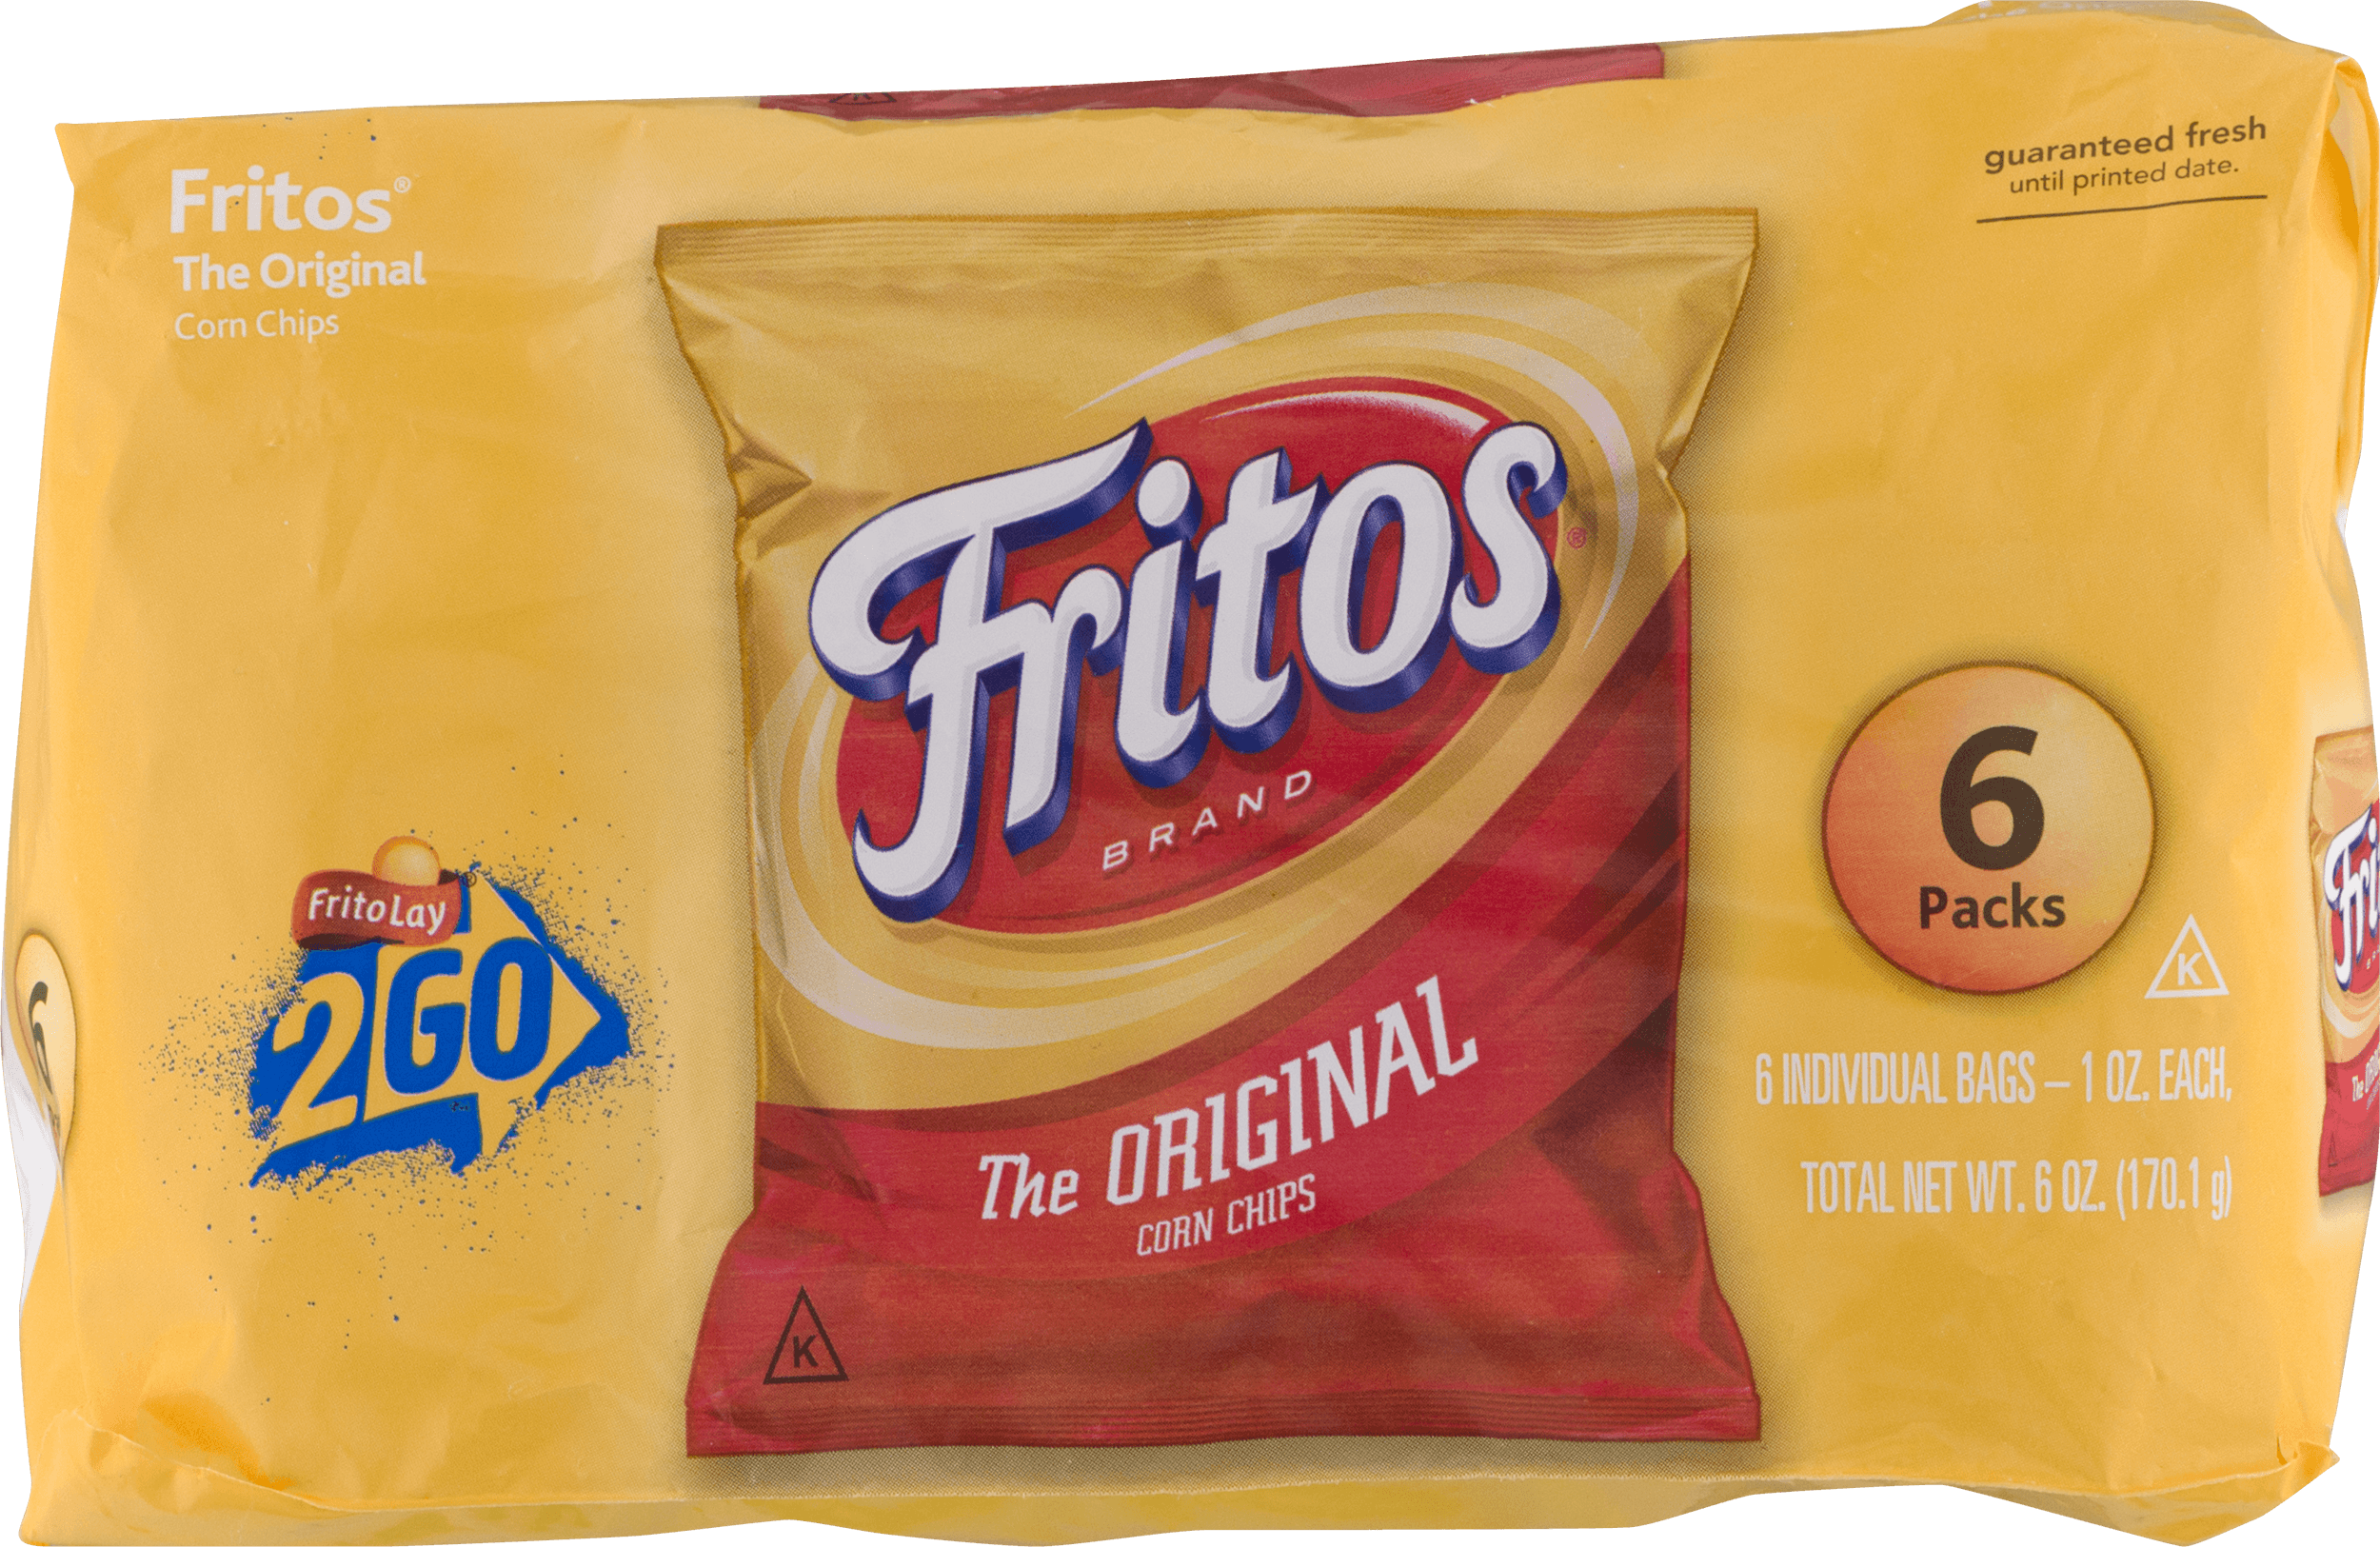 a brief history and analysis of the frito lays tostitos the corn chips Frito-lay north america (flna) includes pepsico's snack operations in the united states and canada where the company dominates the market with a range of savory snacks brands including lay's, ruffles, doritos, tostitos, fritos, cheetos and sunchips.